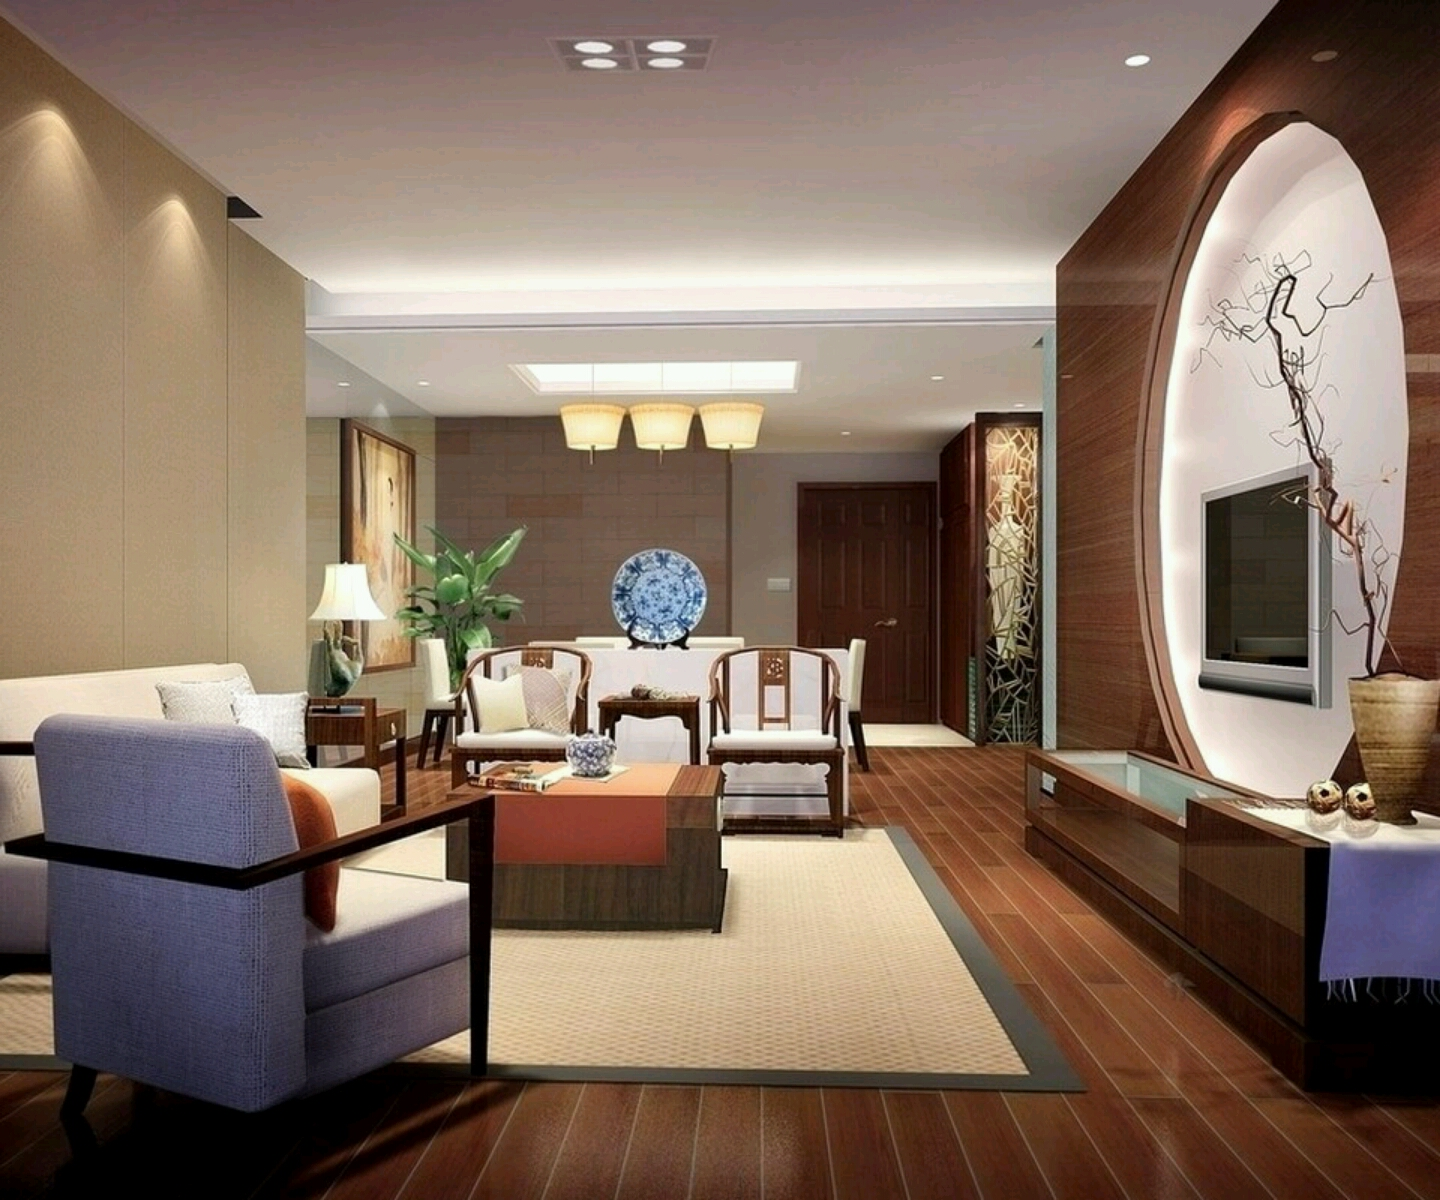 Luxury homes interior decoration living room designs ideas for Luxury living room design